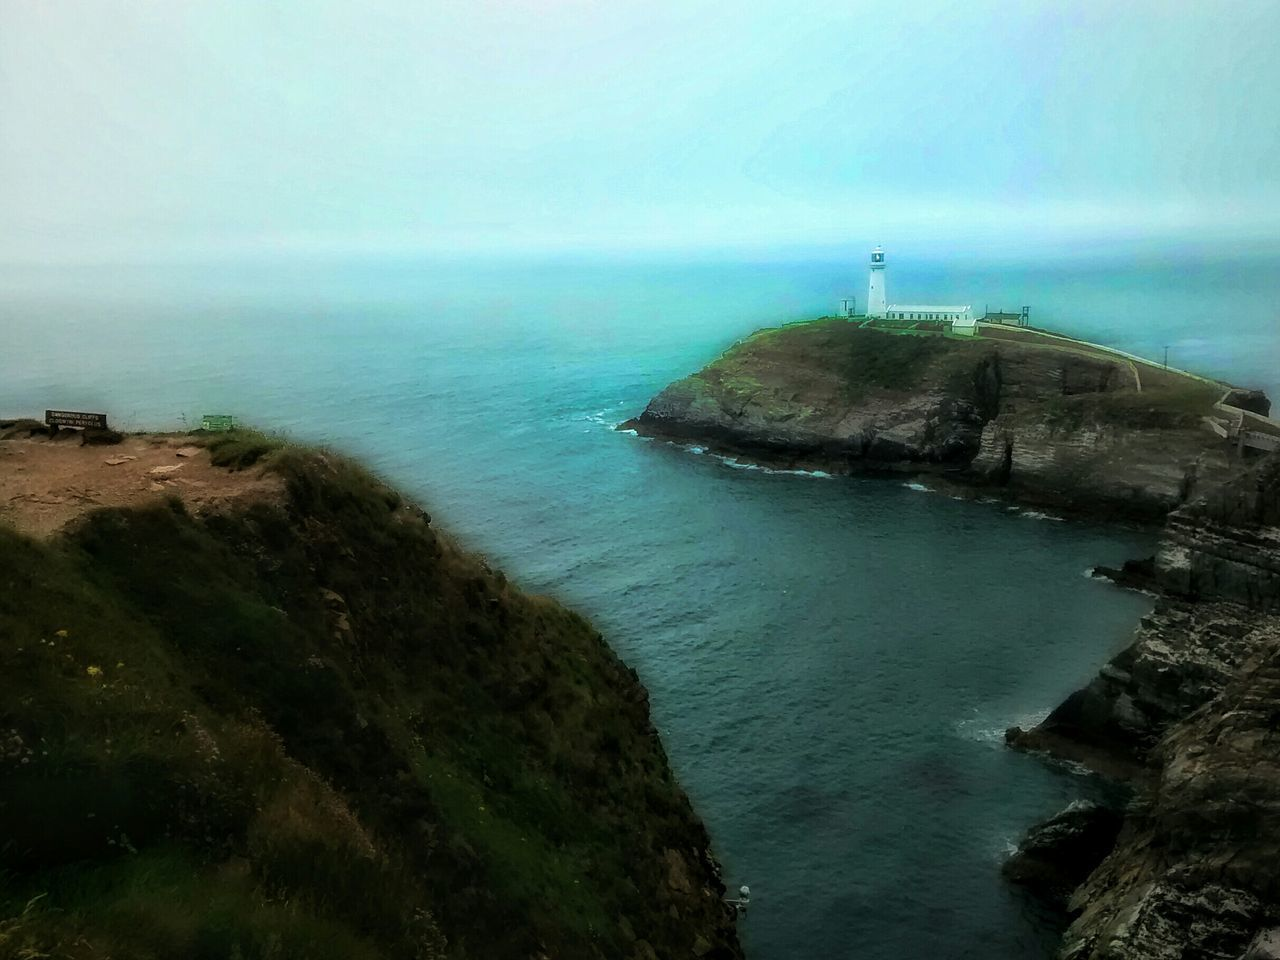 sea, water, built structure, horizon over water, nature, architecture, tranquility, beauty in nature, scenics, day, lighthouse, tranquil scene, no people, building exterior, outdoors, cliff, sky